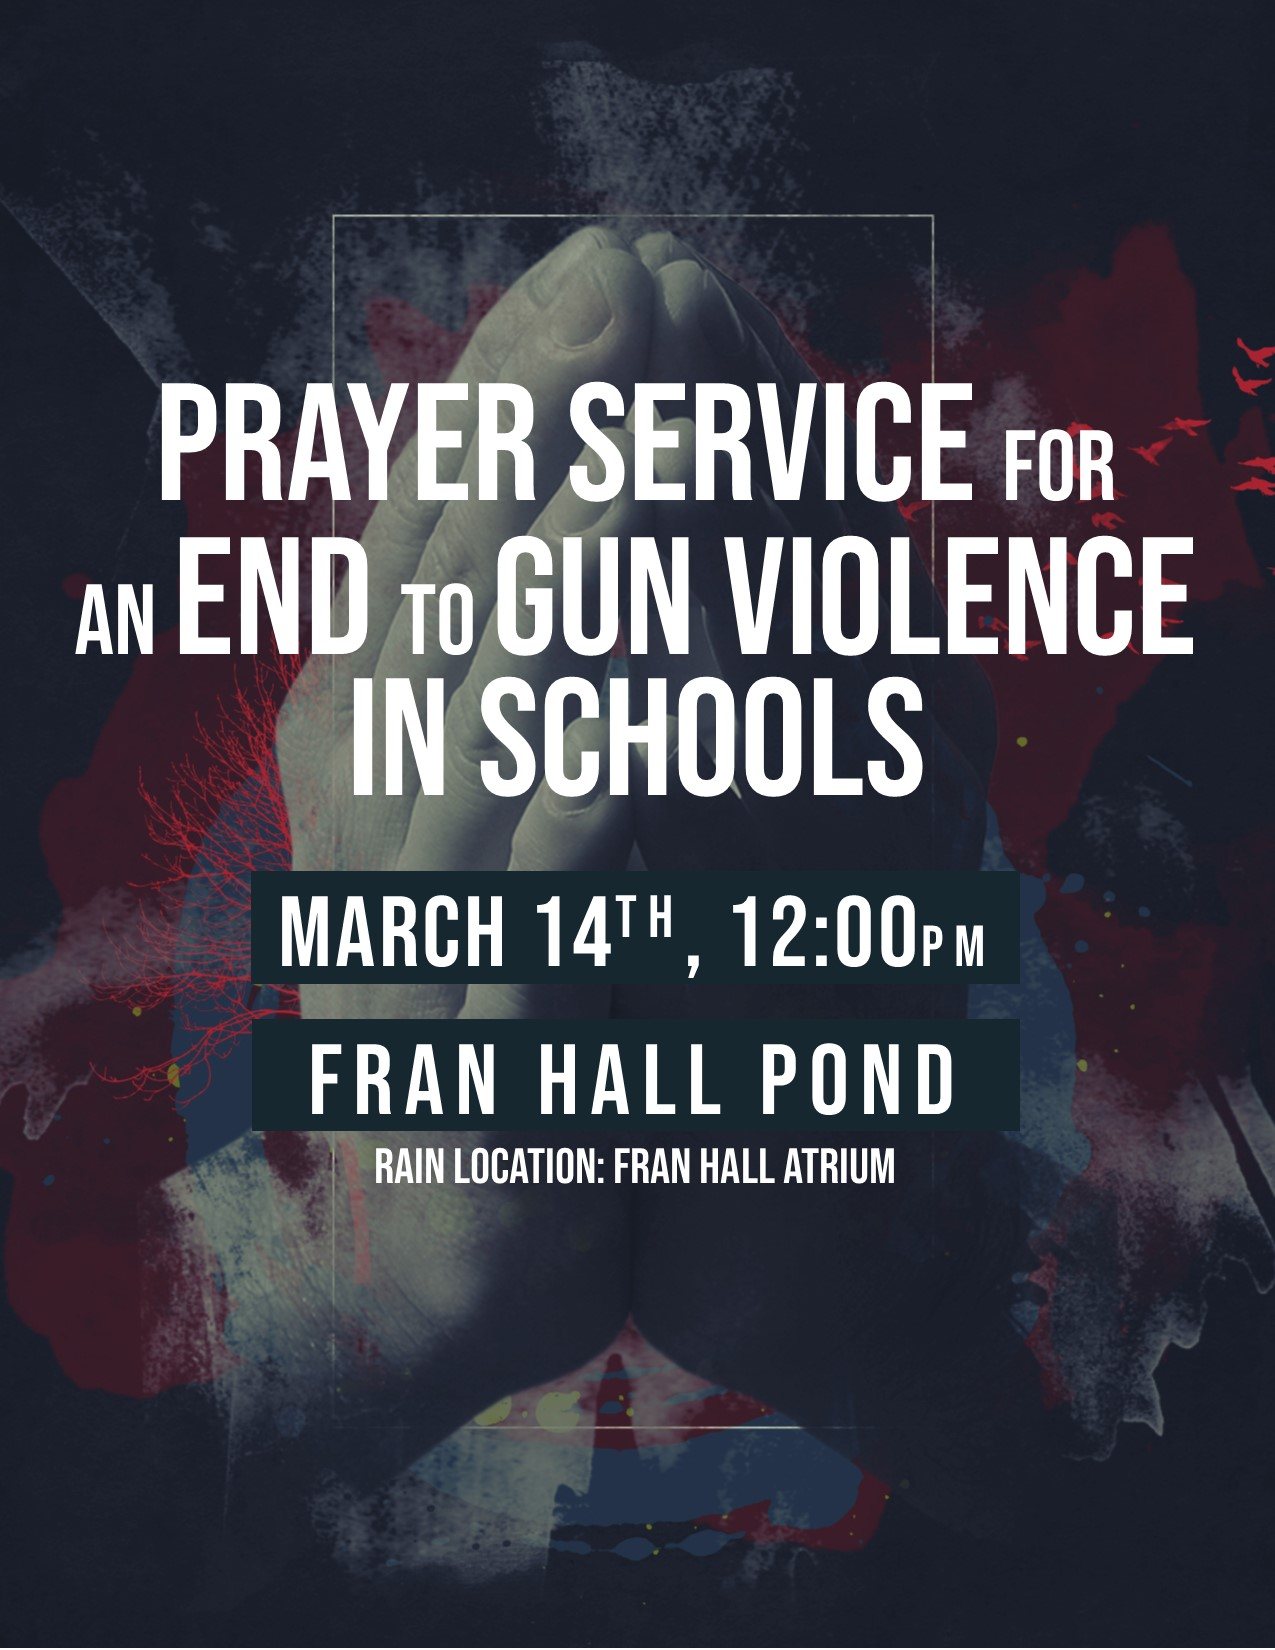 Prayer Service for an End to Gun Violence in Schools